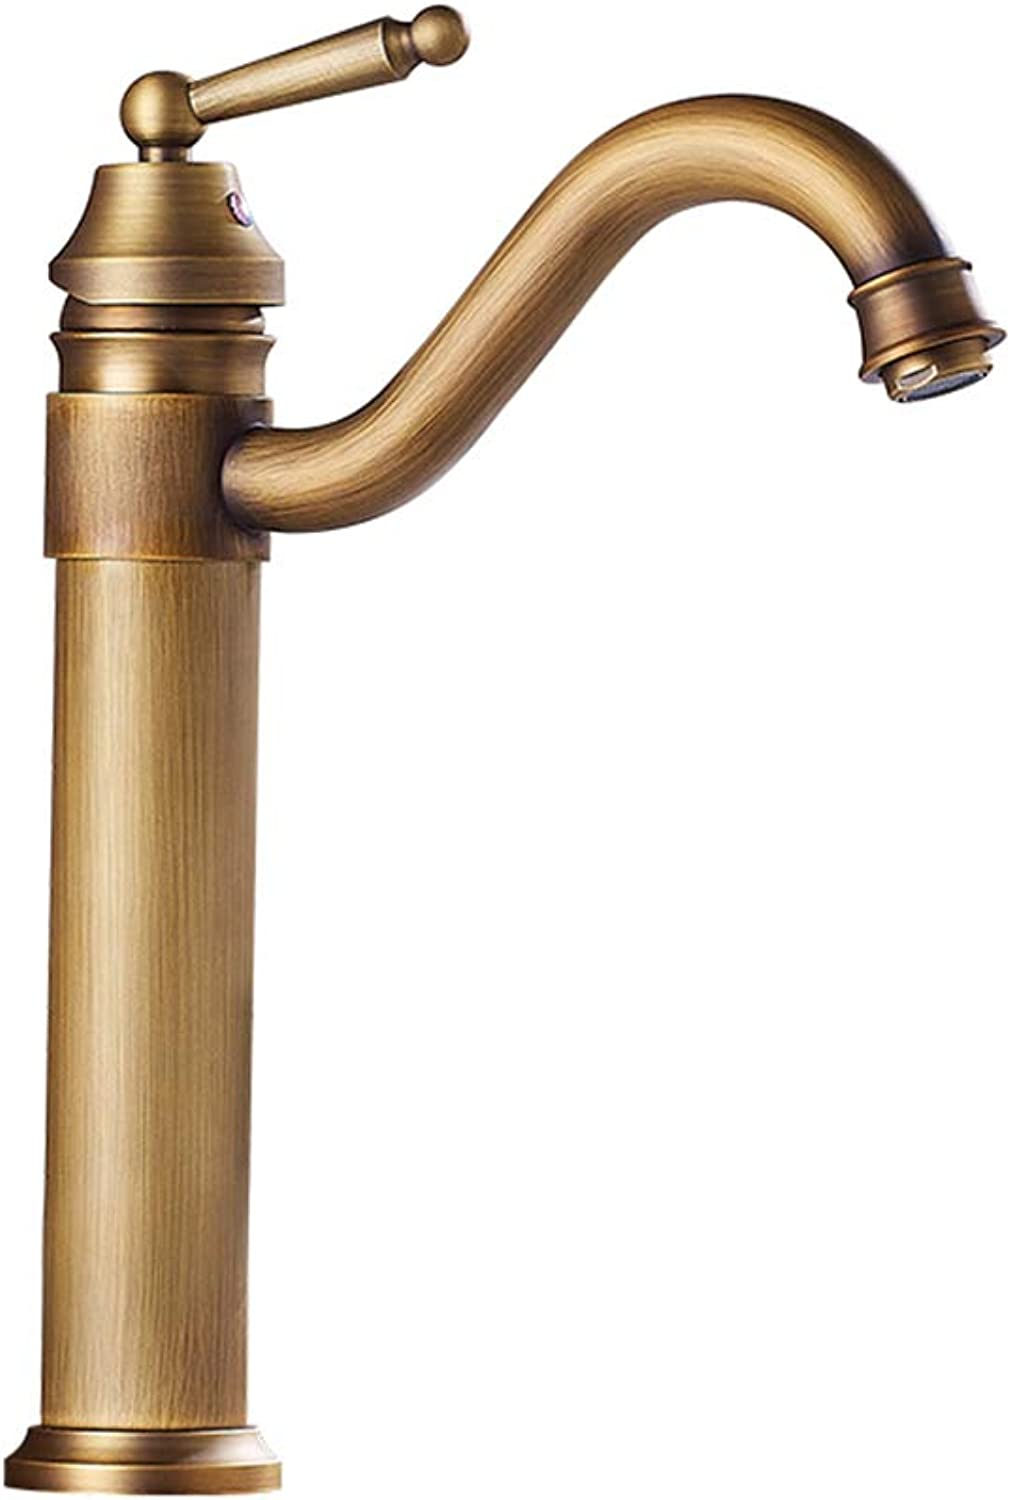 IFELGUD Bath Faucet Copper Faucet Retro Mixer Faucet Counter Basin Hot and Cold Water Taps Bend Outlet Torneira